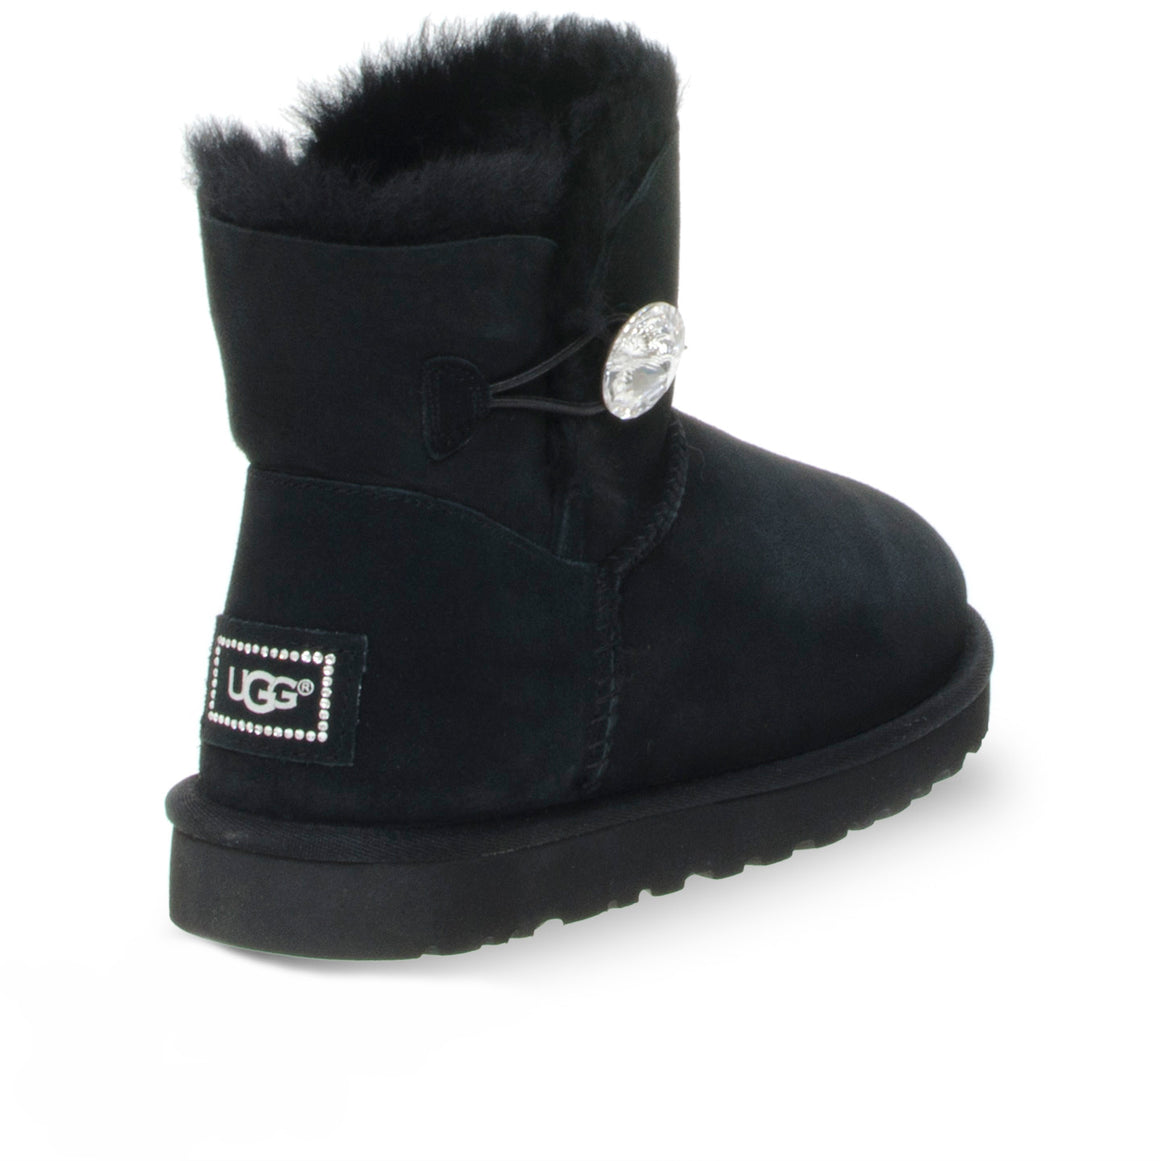 UGG Mini Bailey Button Bling Black Boots - Women's